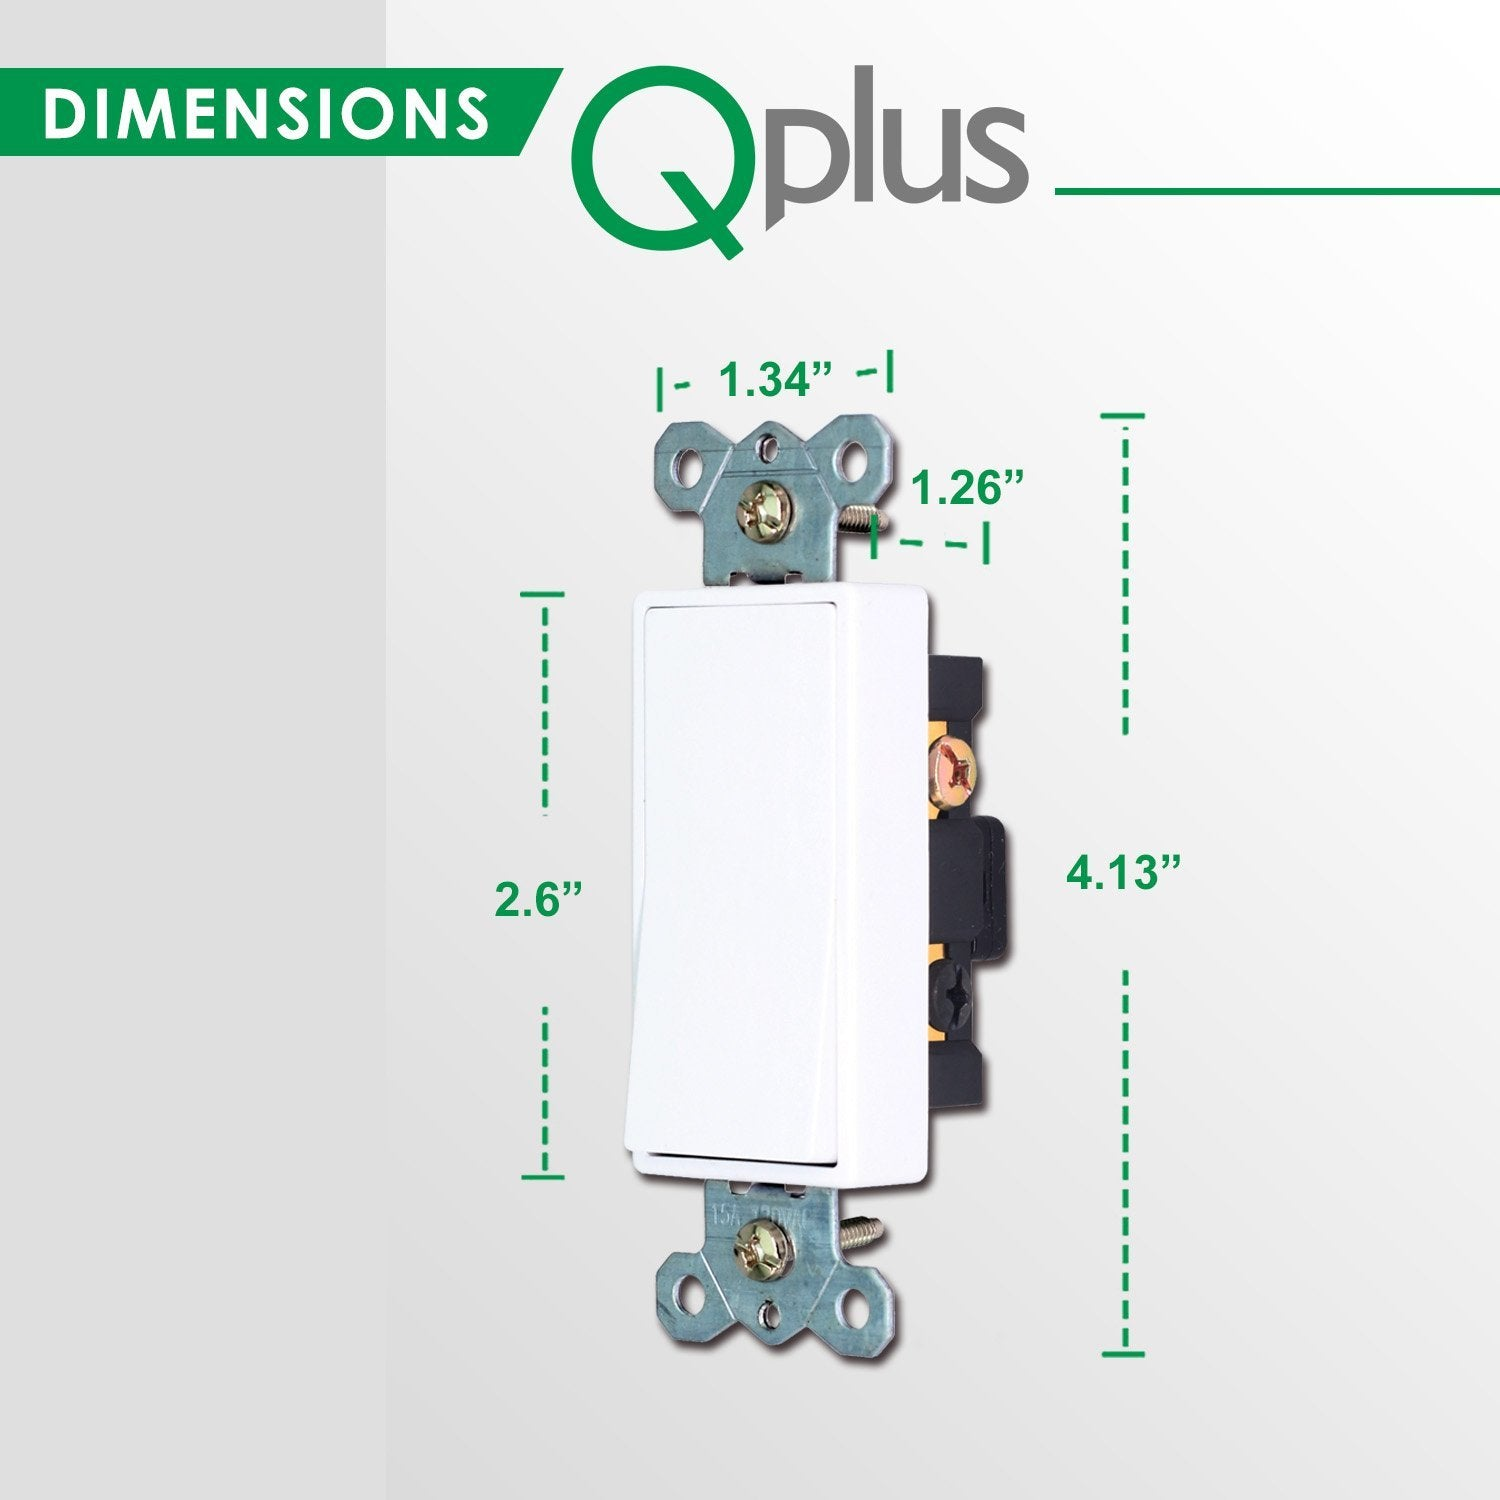 QPlus 3Way Universal Wall Switch with Wall Plate - cUL & FCC Certified - QPlus Home - Brighten Your Life